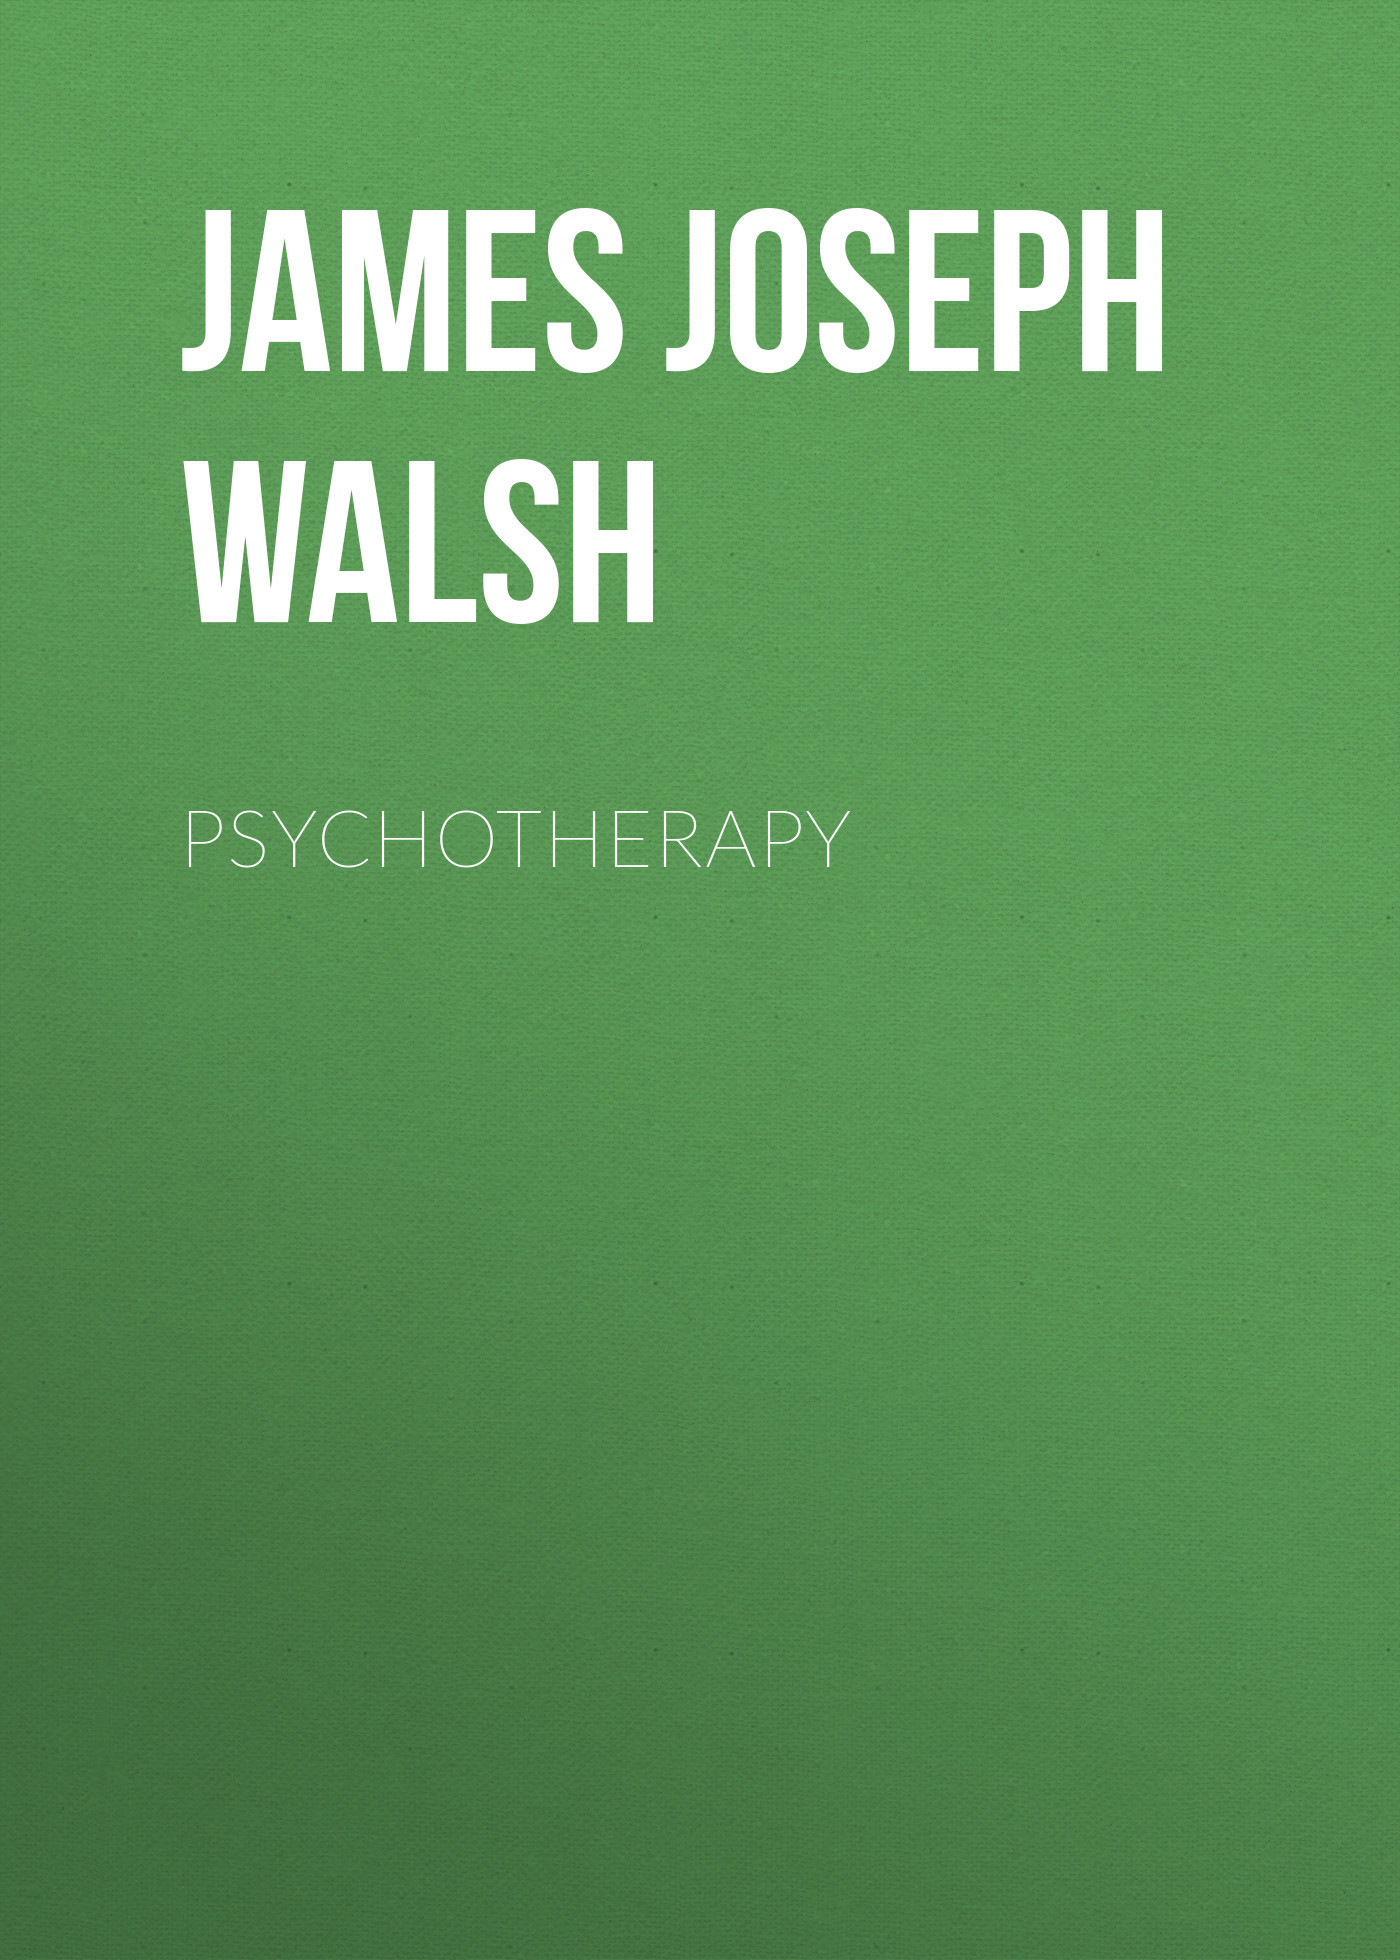 James Joseph Walsh Psychotherapy harriet wadeson art psychotherapy